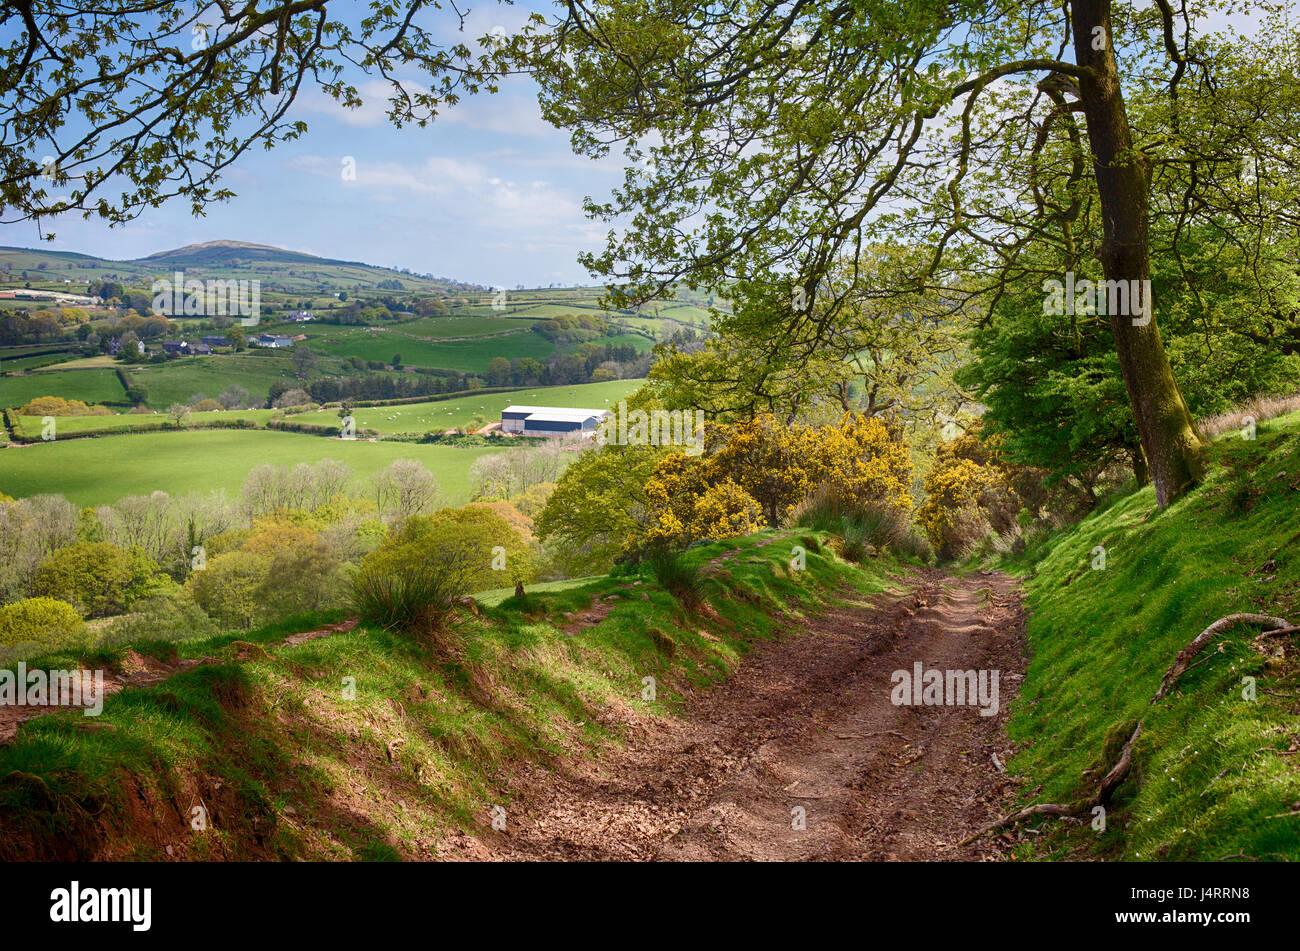 A Wooded Track on the BEacons Way Through Beautiful Countryside in Carmarthenshire, Wales, UK - Stock Image